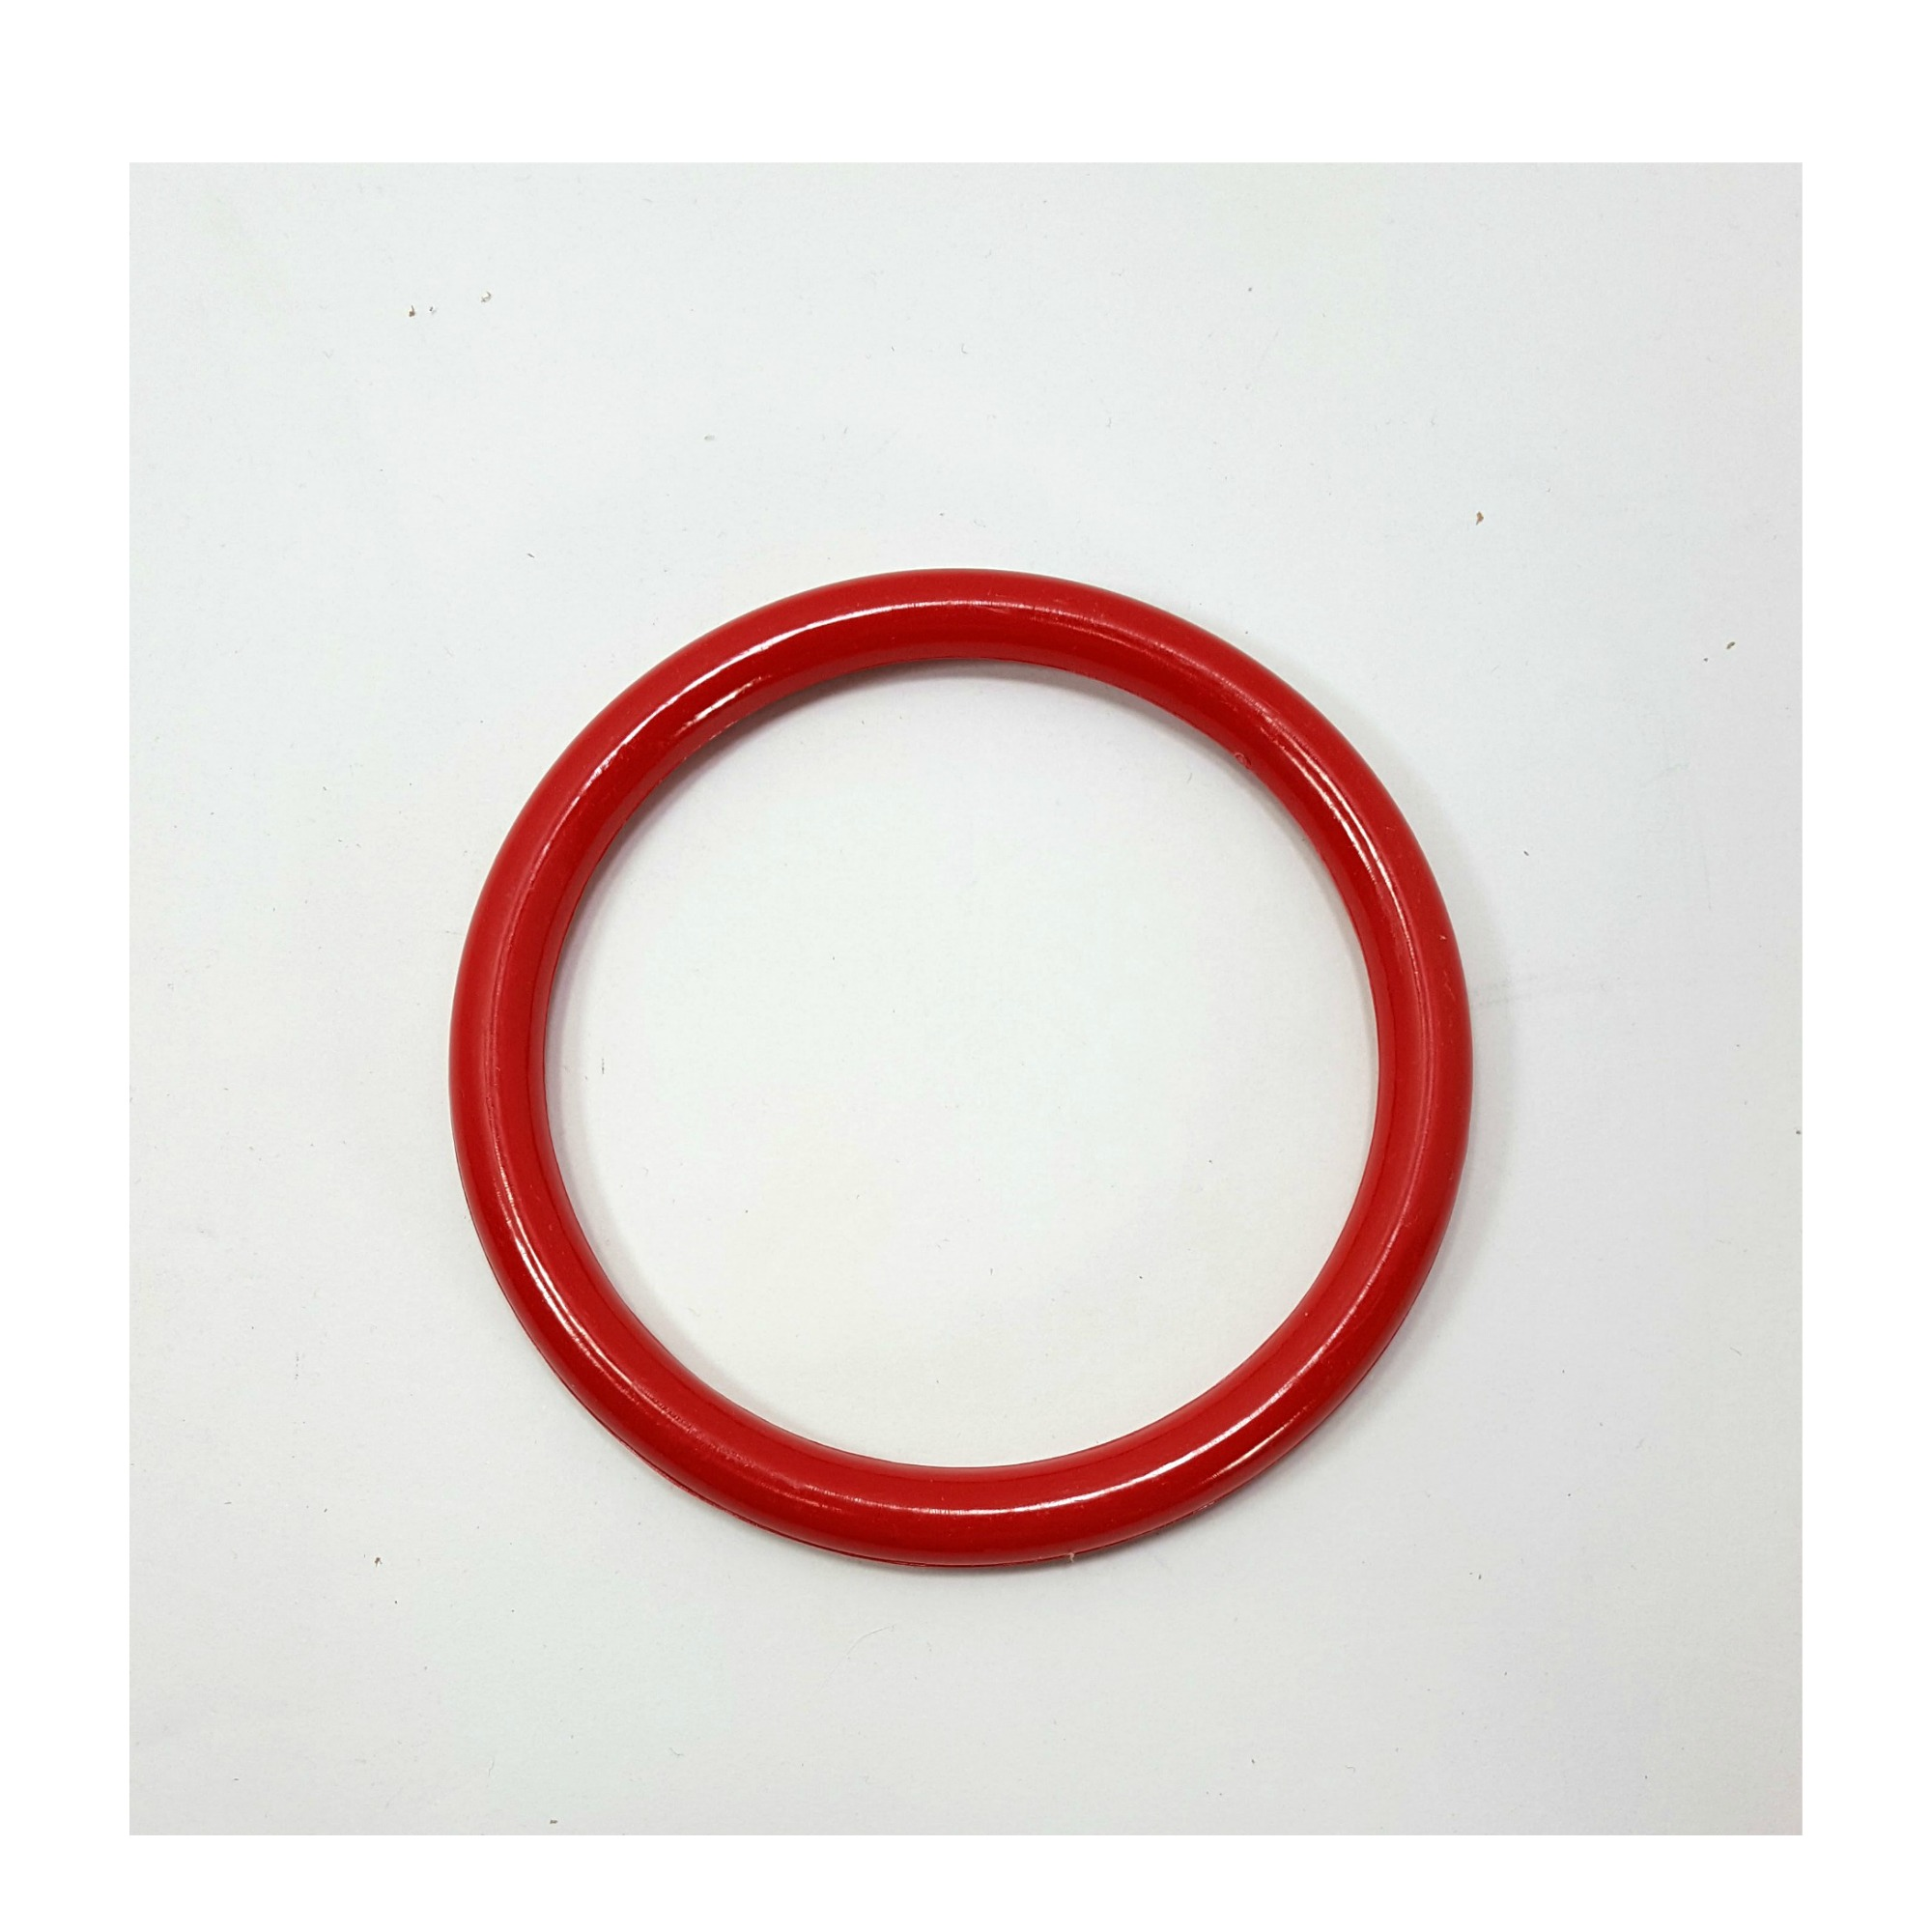 "Marbella Style Ring for Bird Toys Crafts 5"" Red 1 pc"